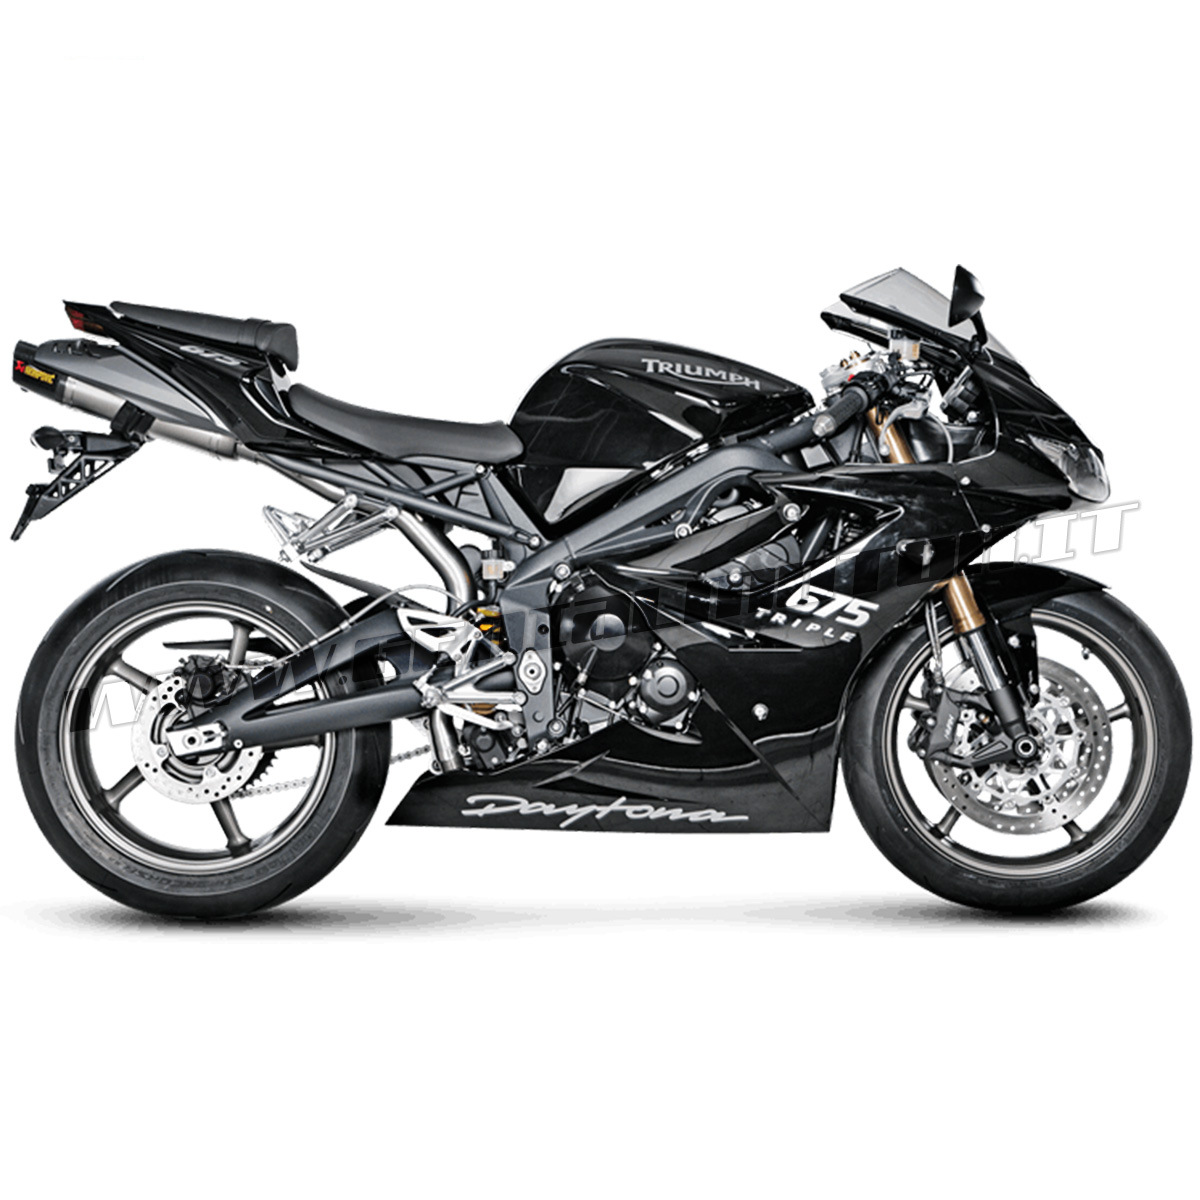 S-T675SO3-HACT Exhaust Titanium Approved Muffler Akrapovic Triumph DAYTONA  675 R 2011 > 2012